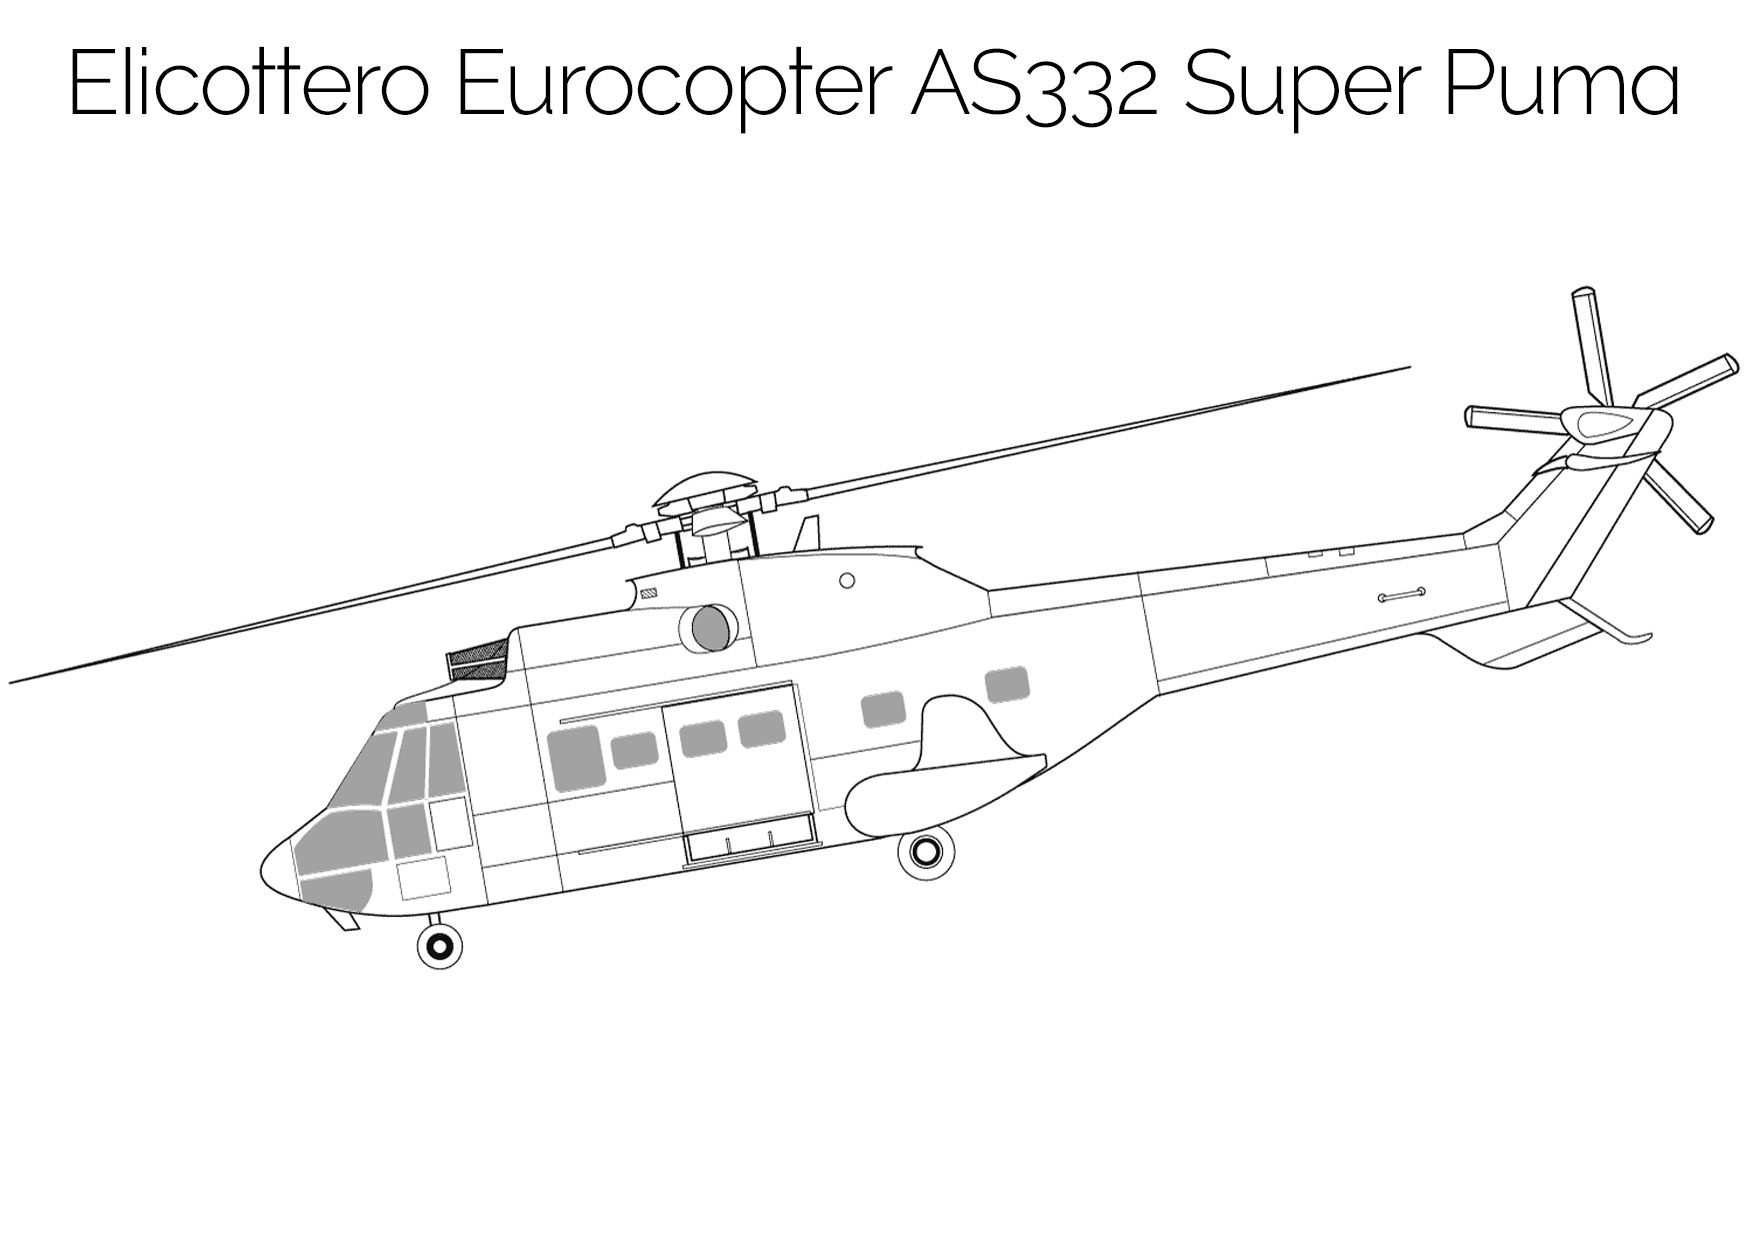 Elicottero da colorare Eurocopter AS332 Super Puma